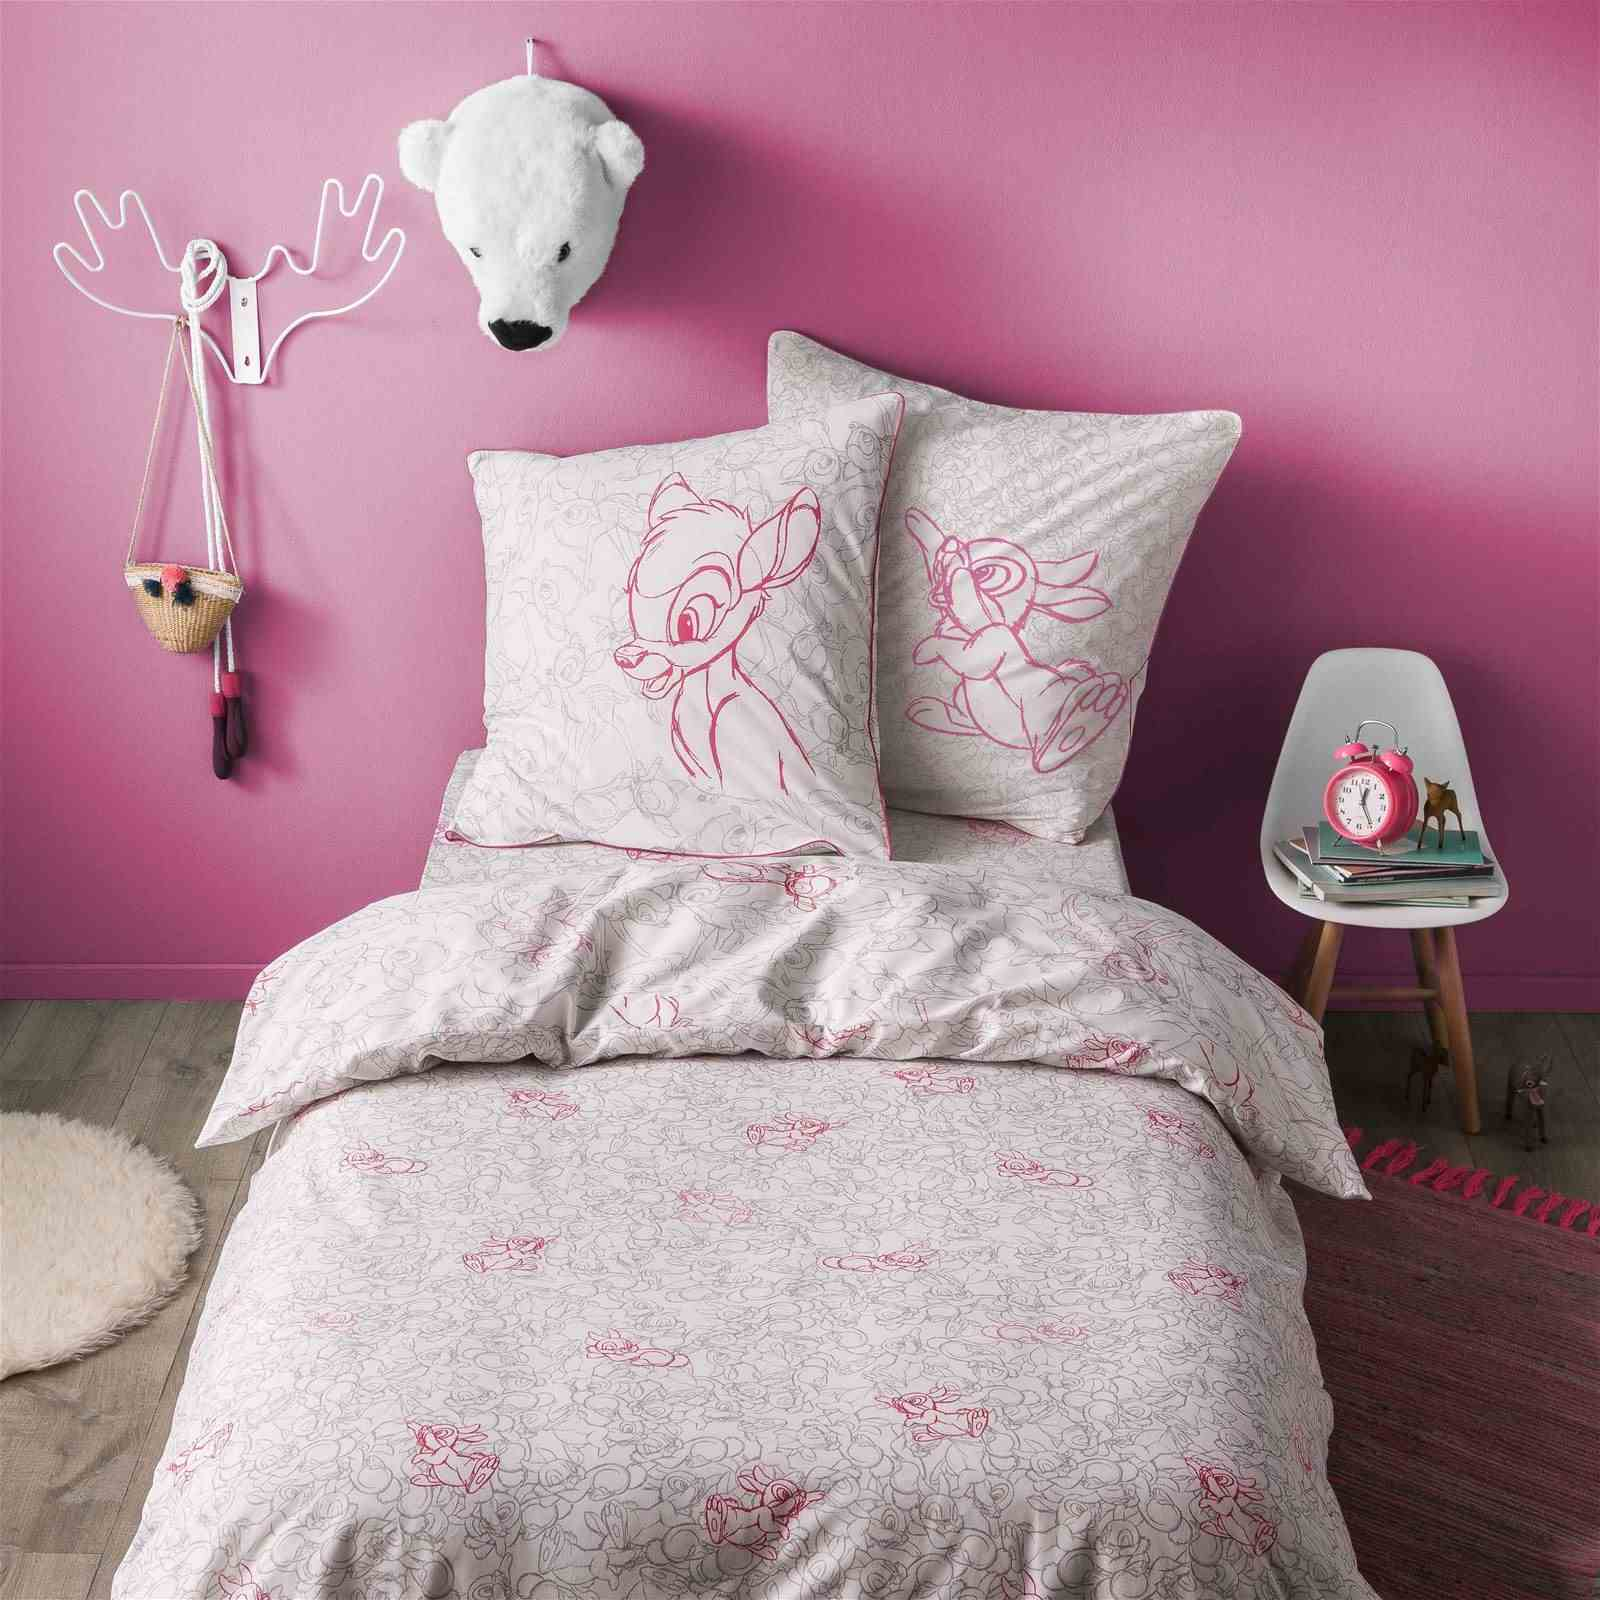 blanc cerise bambi bambi cache cache blanc brandalley. Black Bedroom Furniture Sets. Home Design Ideas